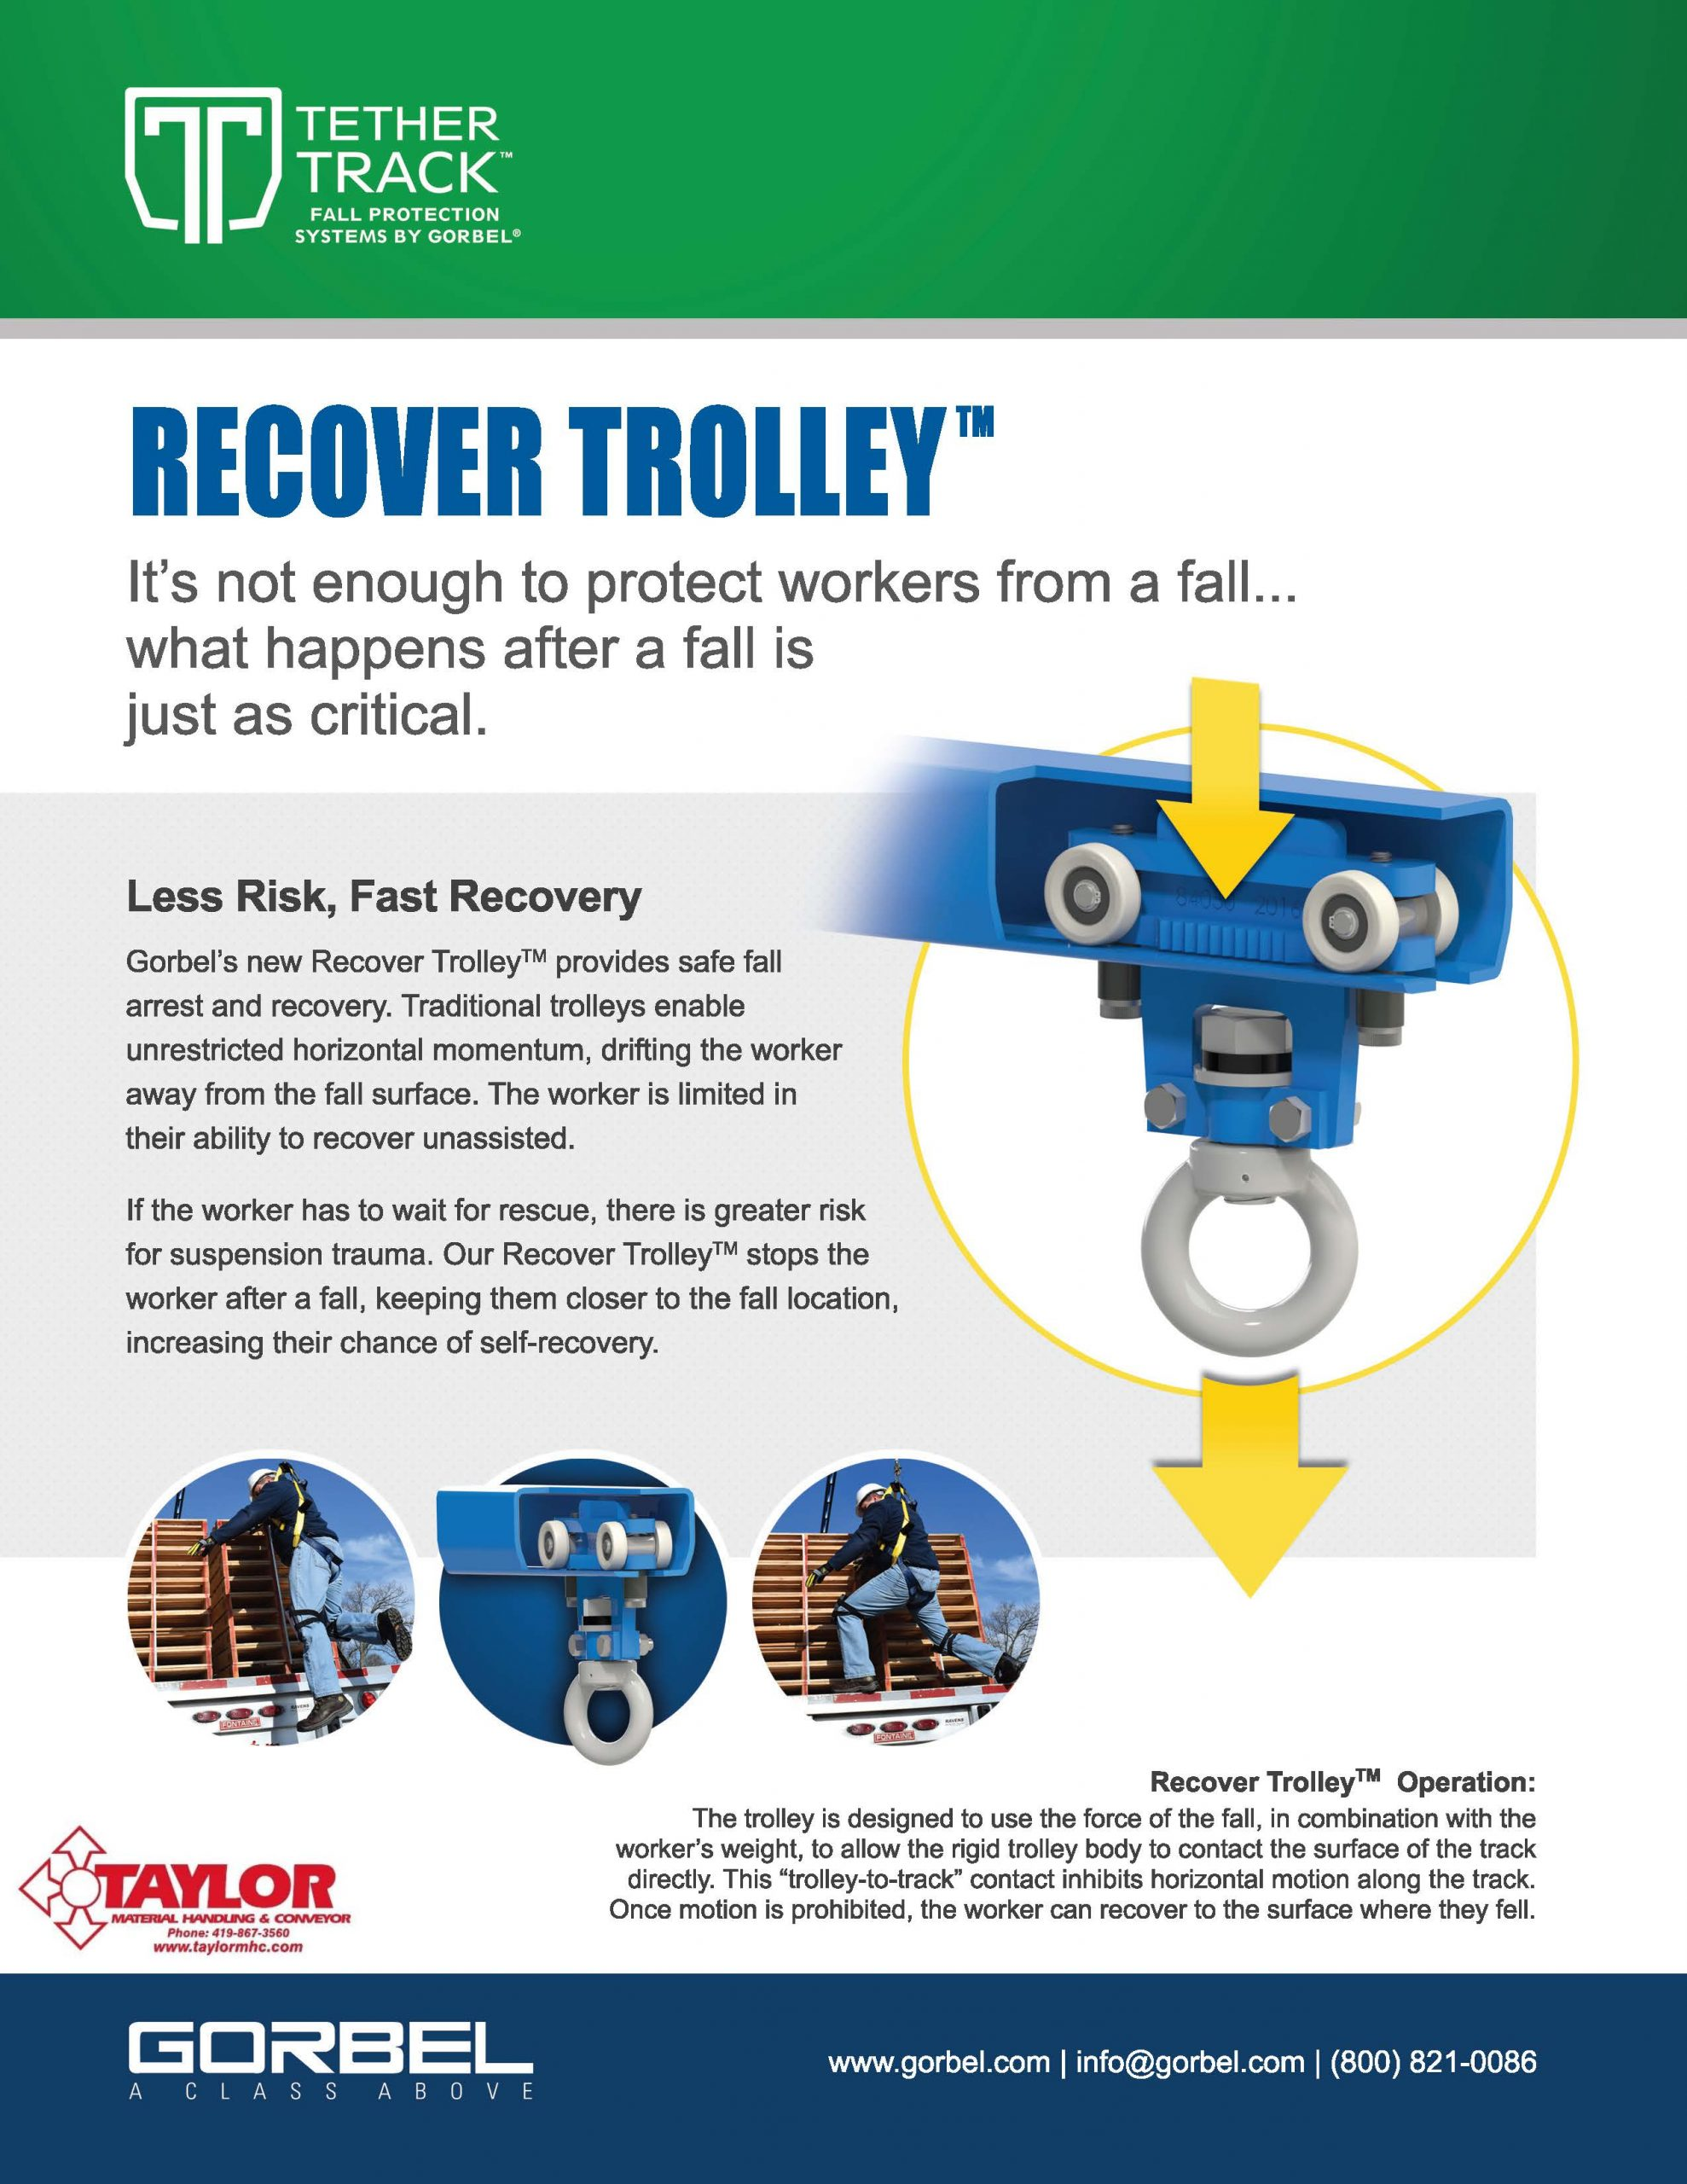 Gorbel Tether Track Recovery Trolley